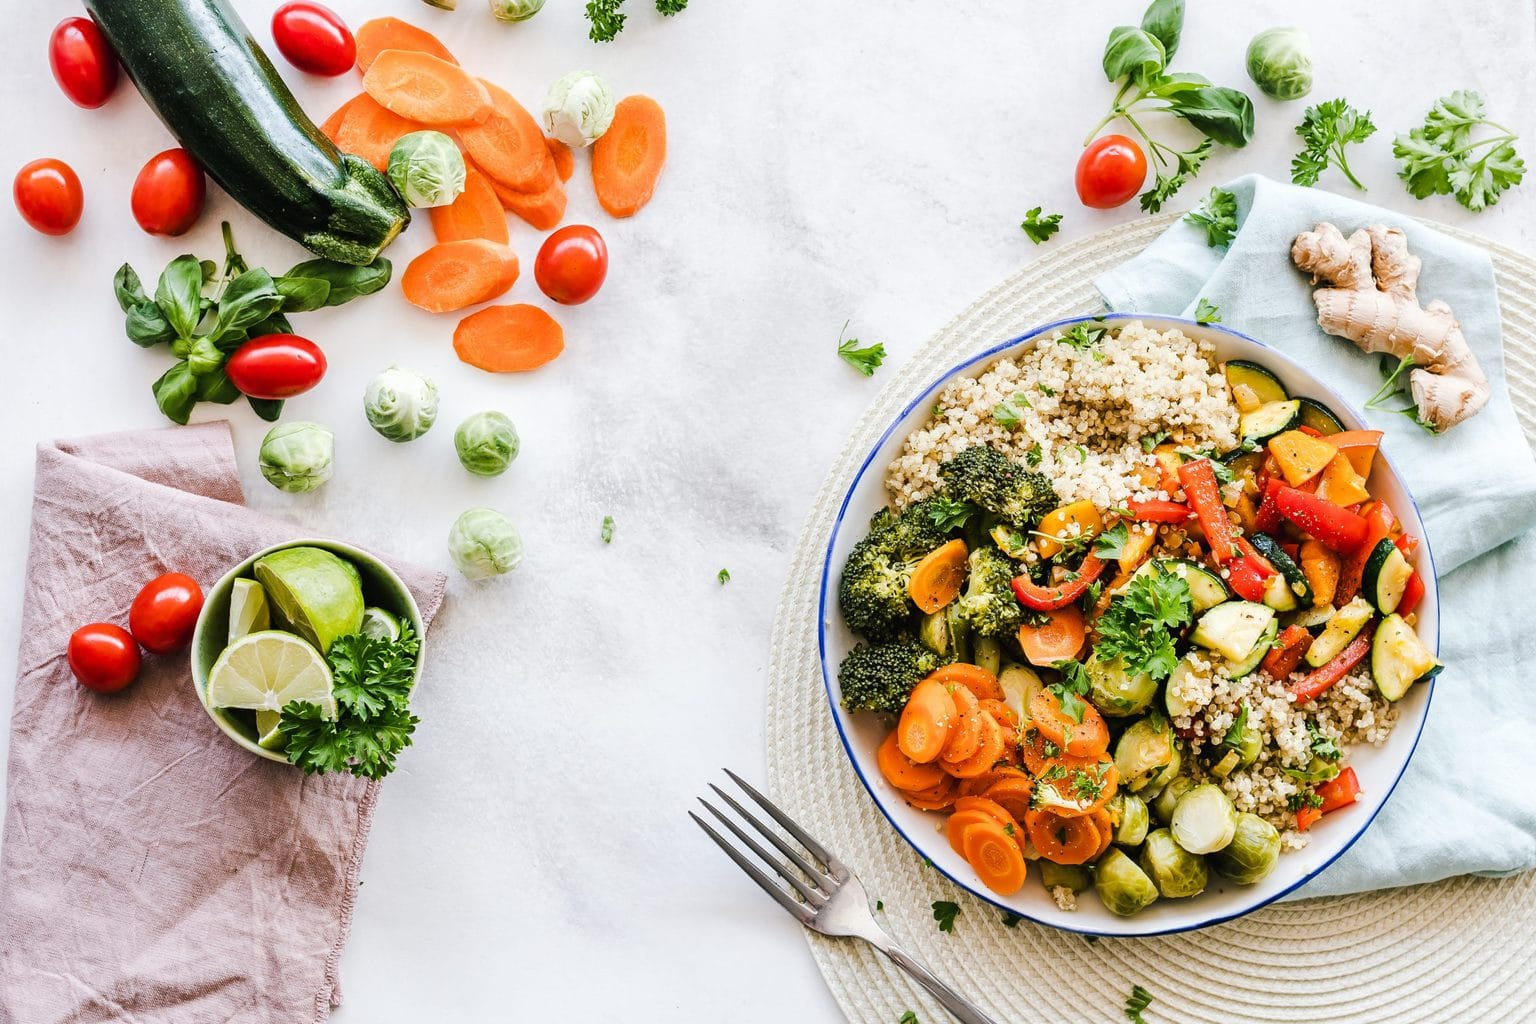 More and more people are choosing to switch to a plant-based diet. If you're considering making changes to your menu, or you're keen to try vegan meals, here are some top tips to help you reap the rewards of plant power.